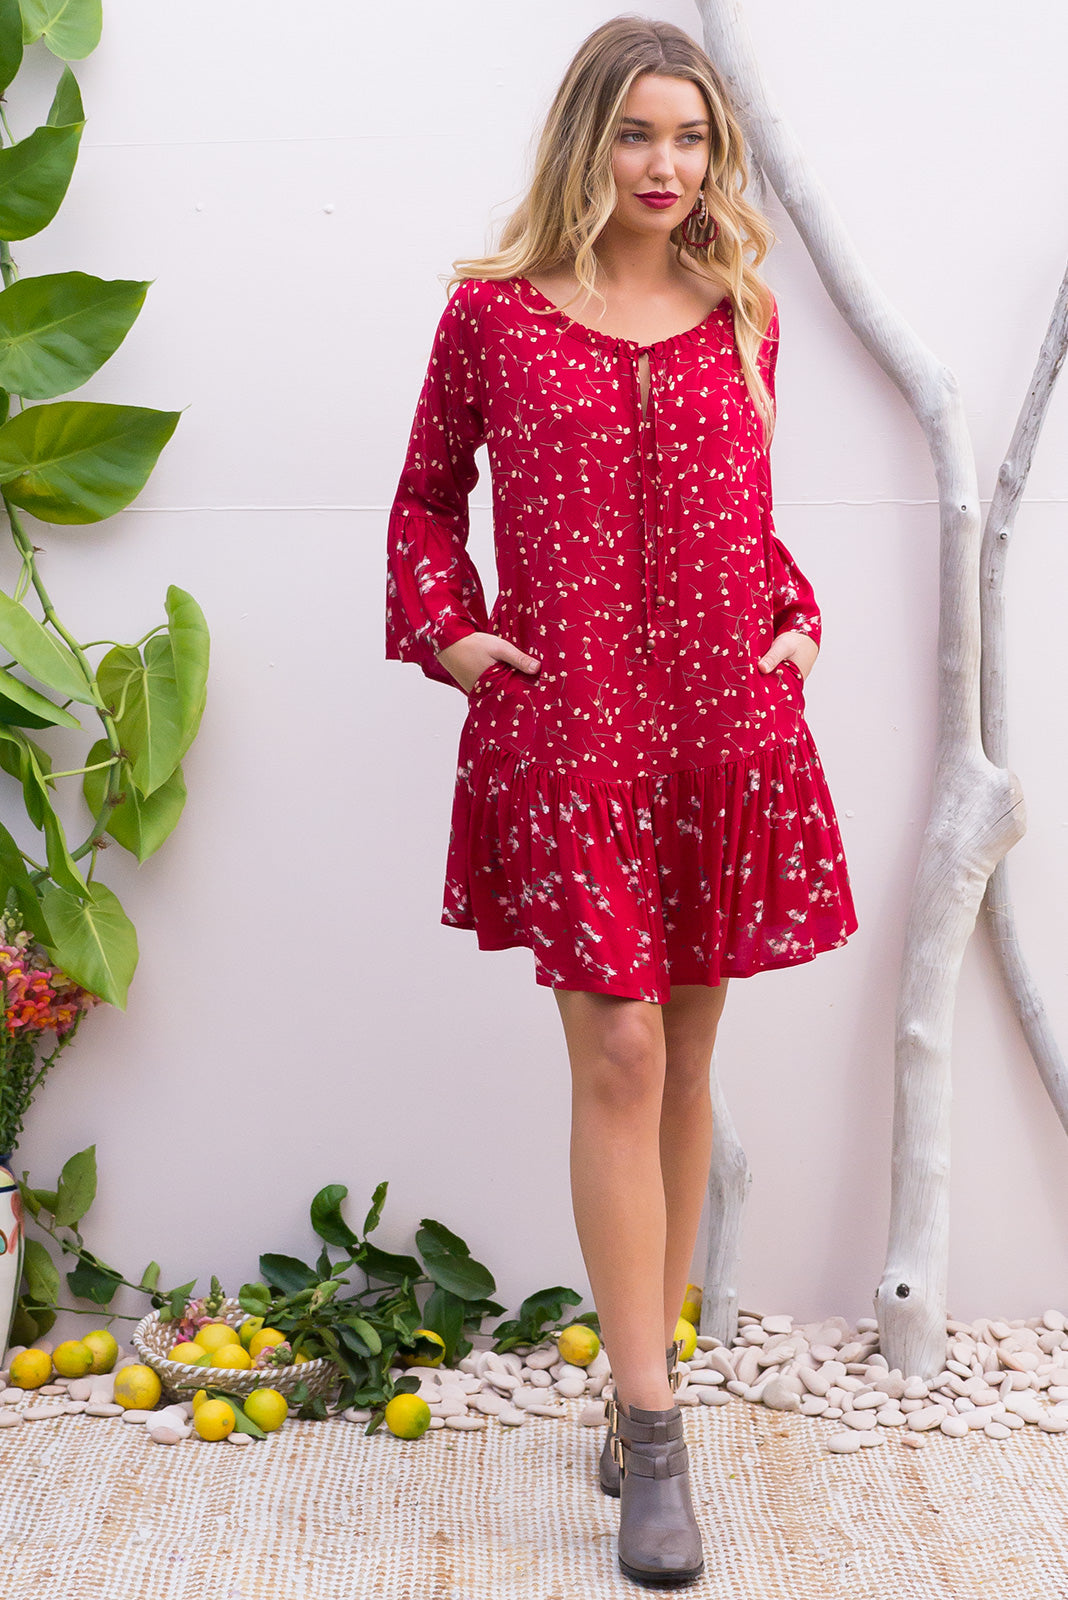 Moon River Ruby Red Dress features a drop waist and 3/4 sleeves with a boho frill and a cord drawstring neck in a intricate boho mix and match vintage print in bold ruby red shades on a soft woven rayon